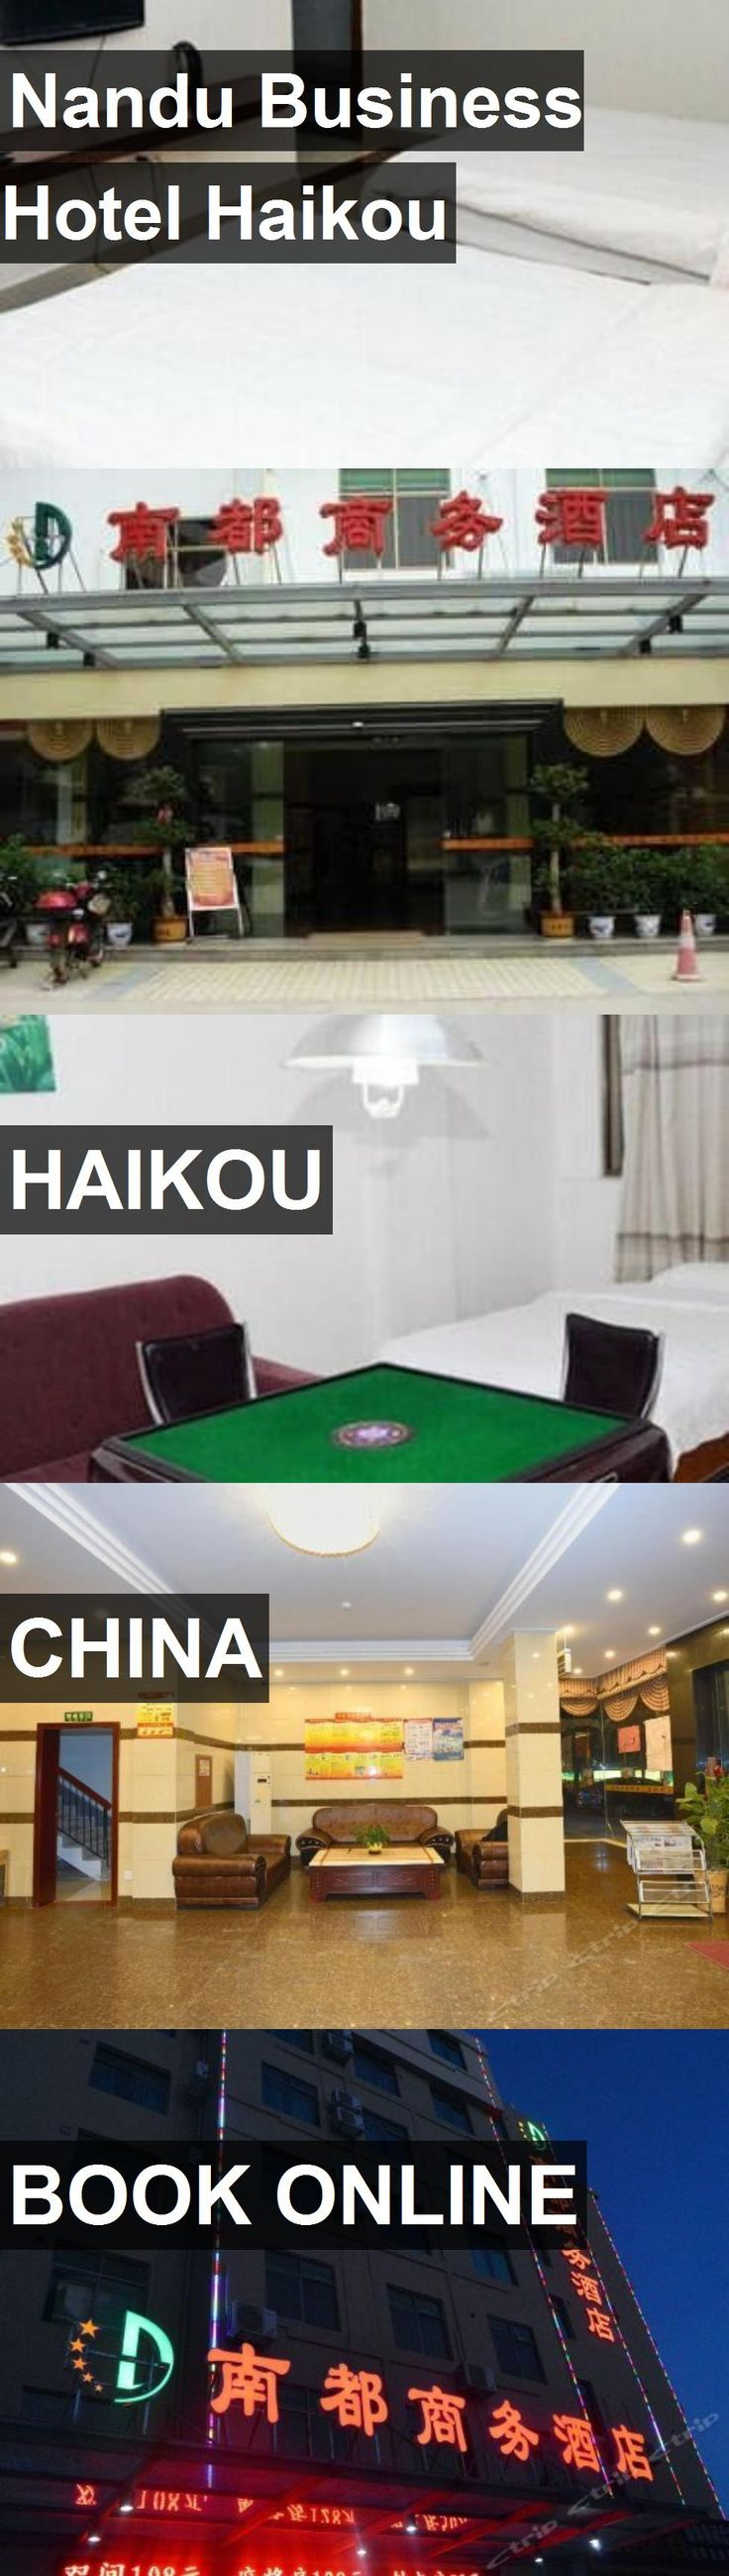 Nandu Business Hotel Haikou in Haikou, China. For more information, photos, reviews and best prices please follow the link. #China #Haikou #travel #vacation #hotel